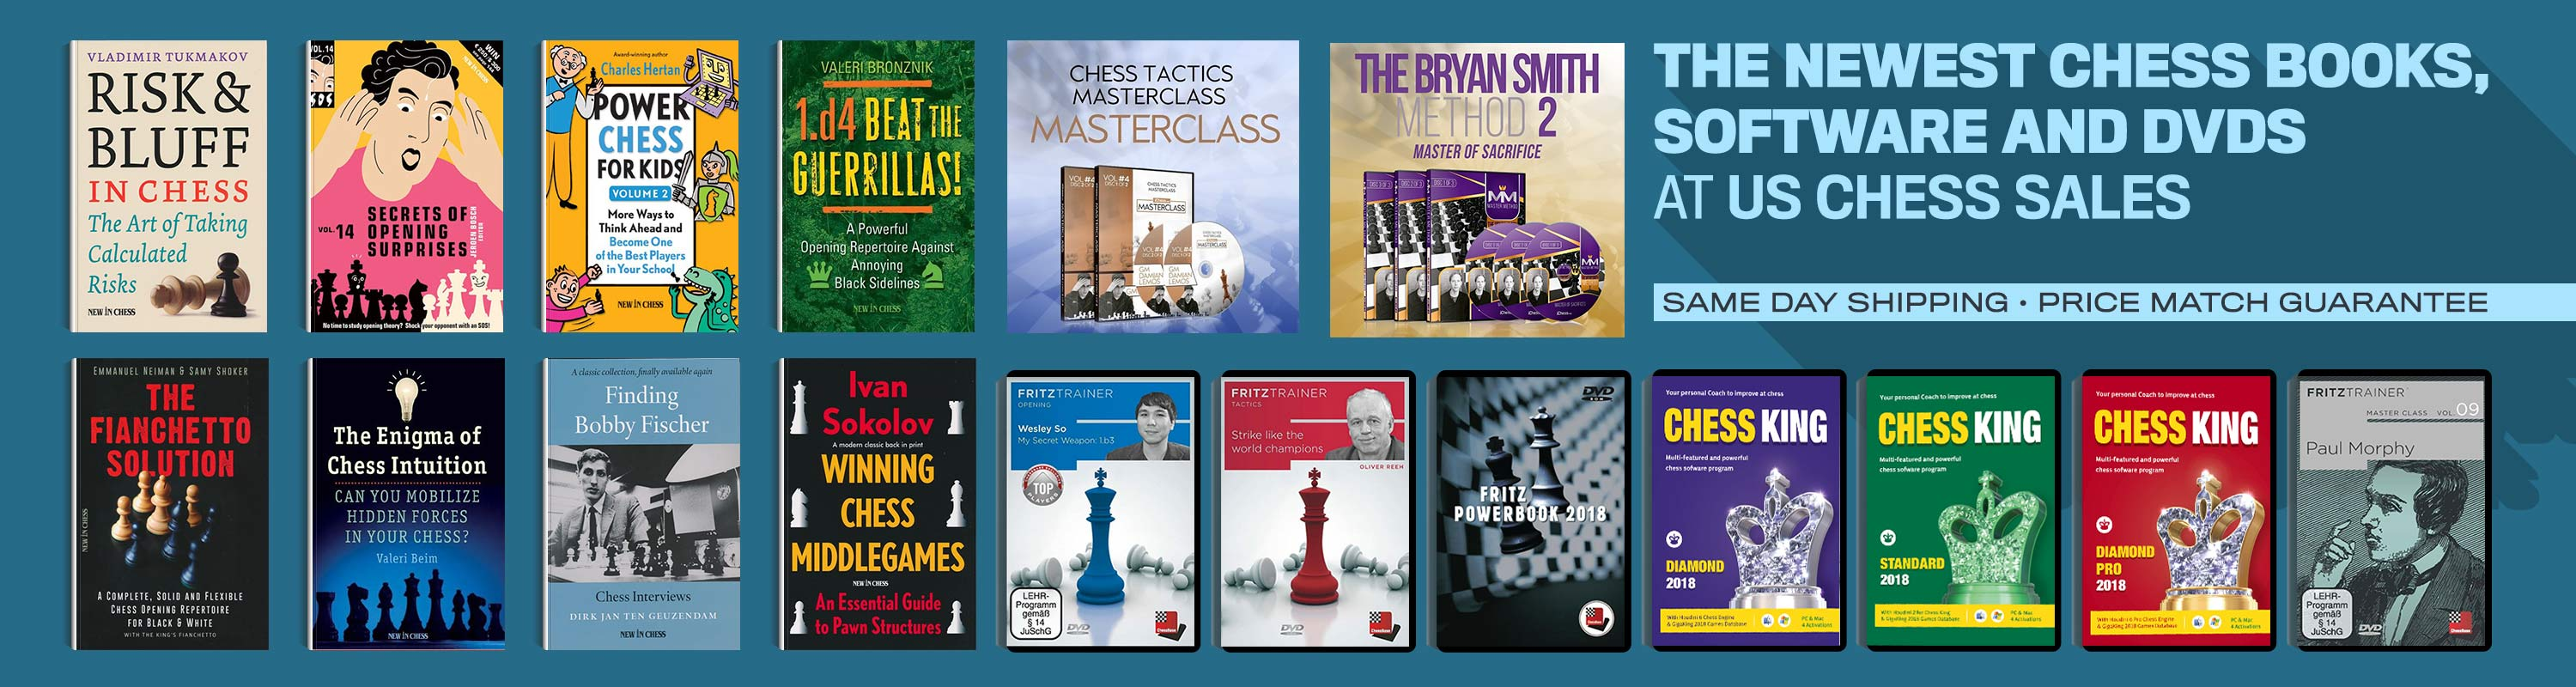 The Newest Chess Books, Software, and DVDs at US Chess Sales